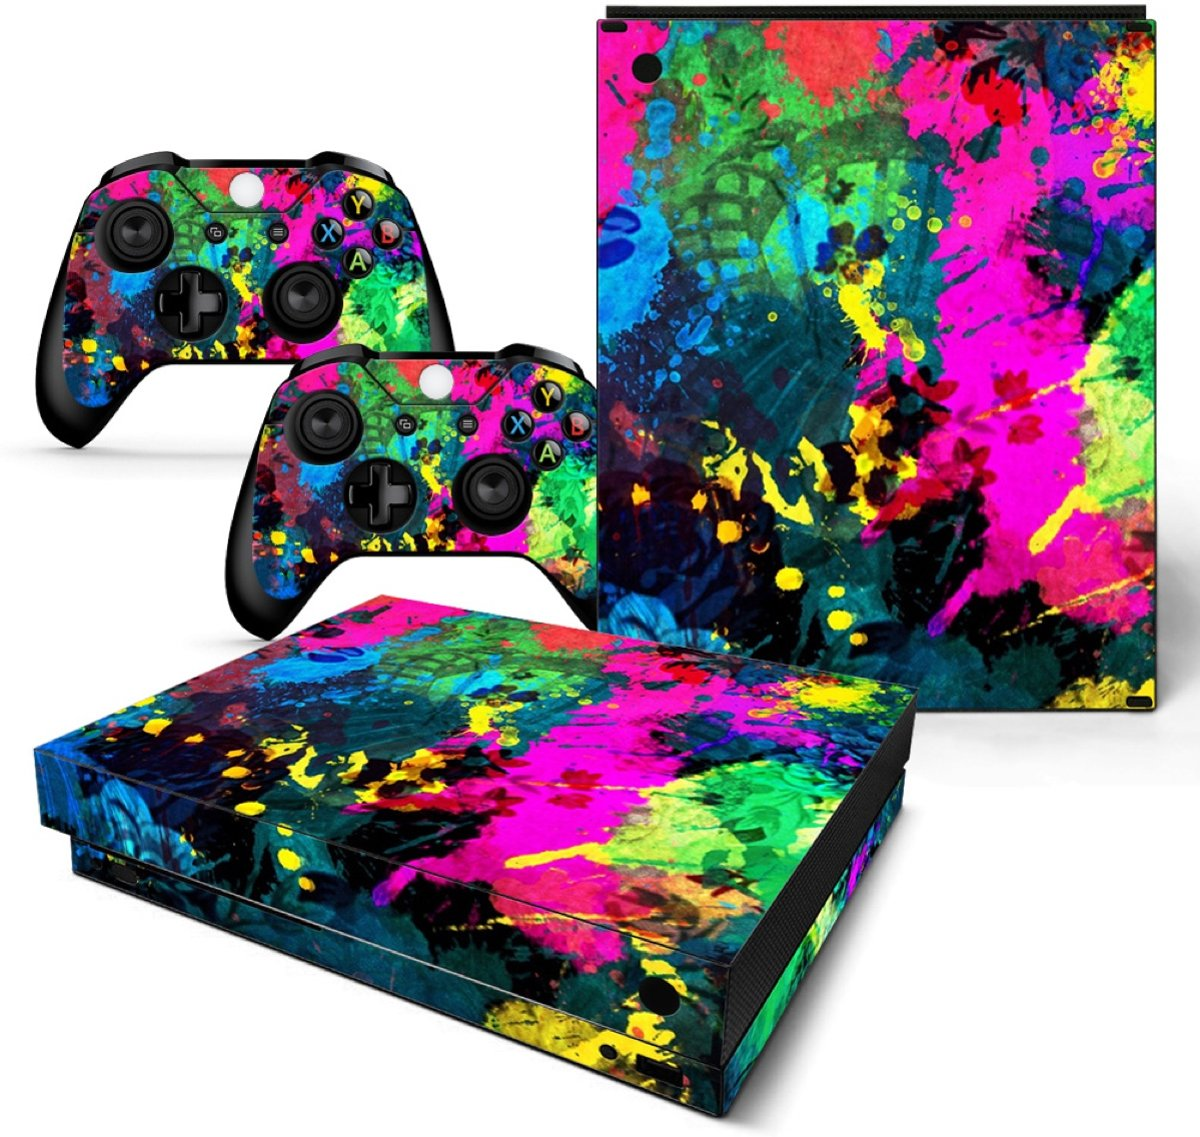 Color Splash - Xbox One X Console Skins Stickers